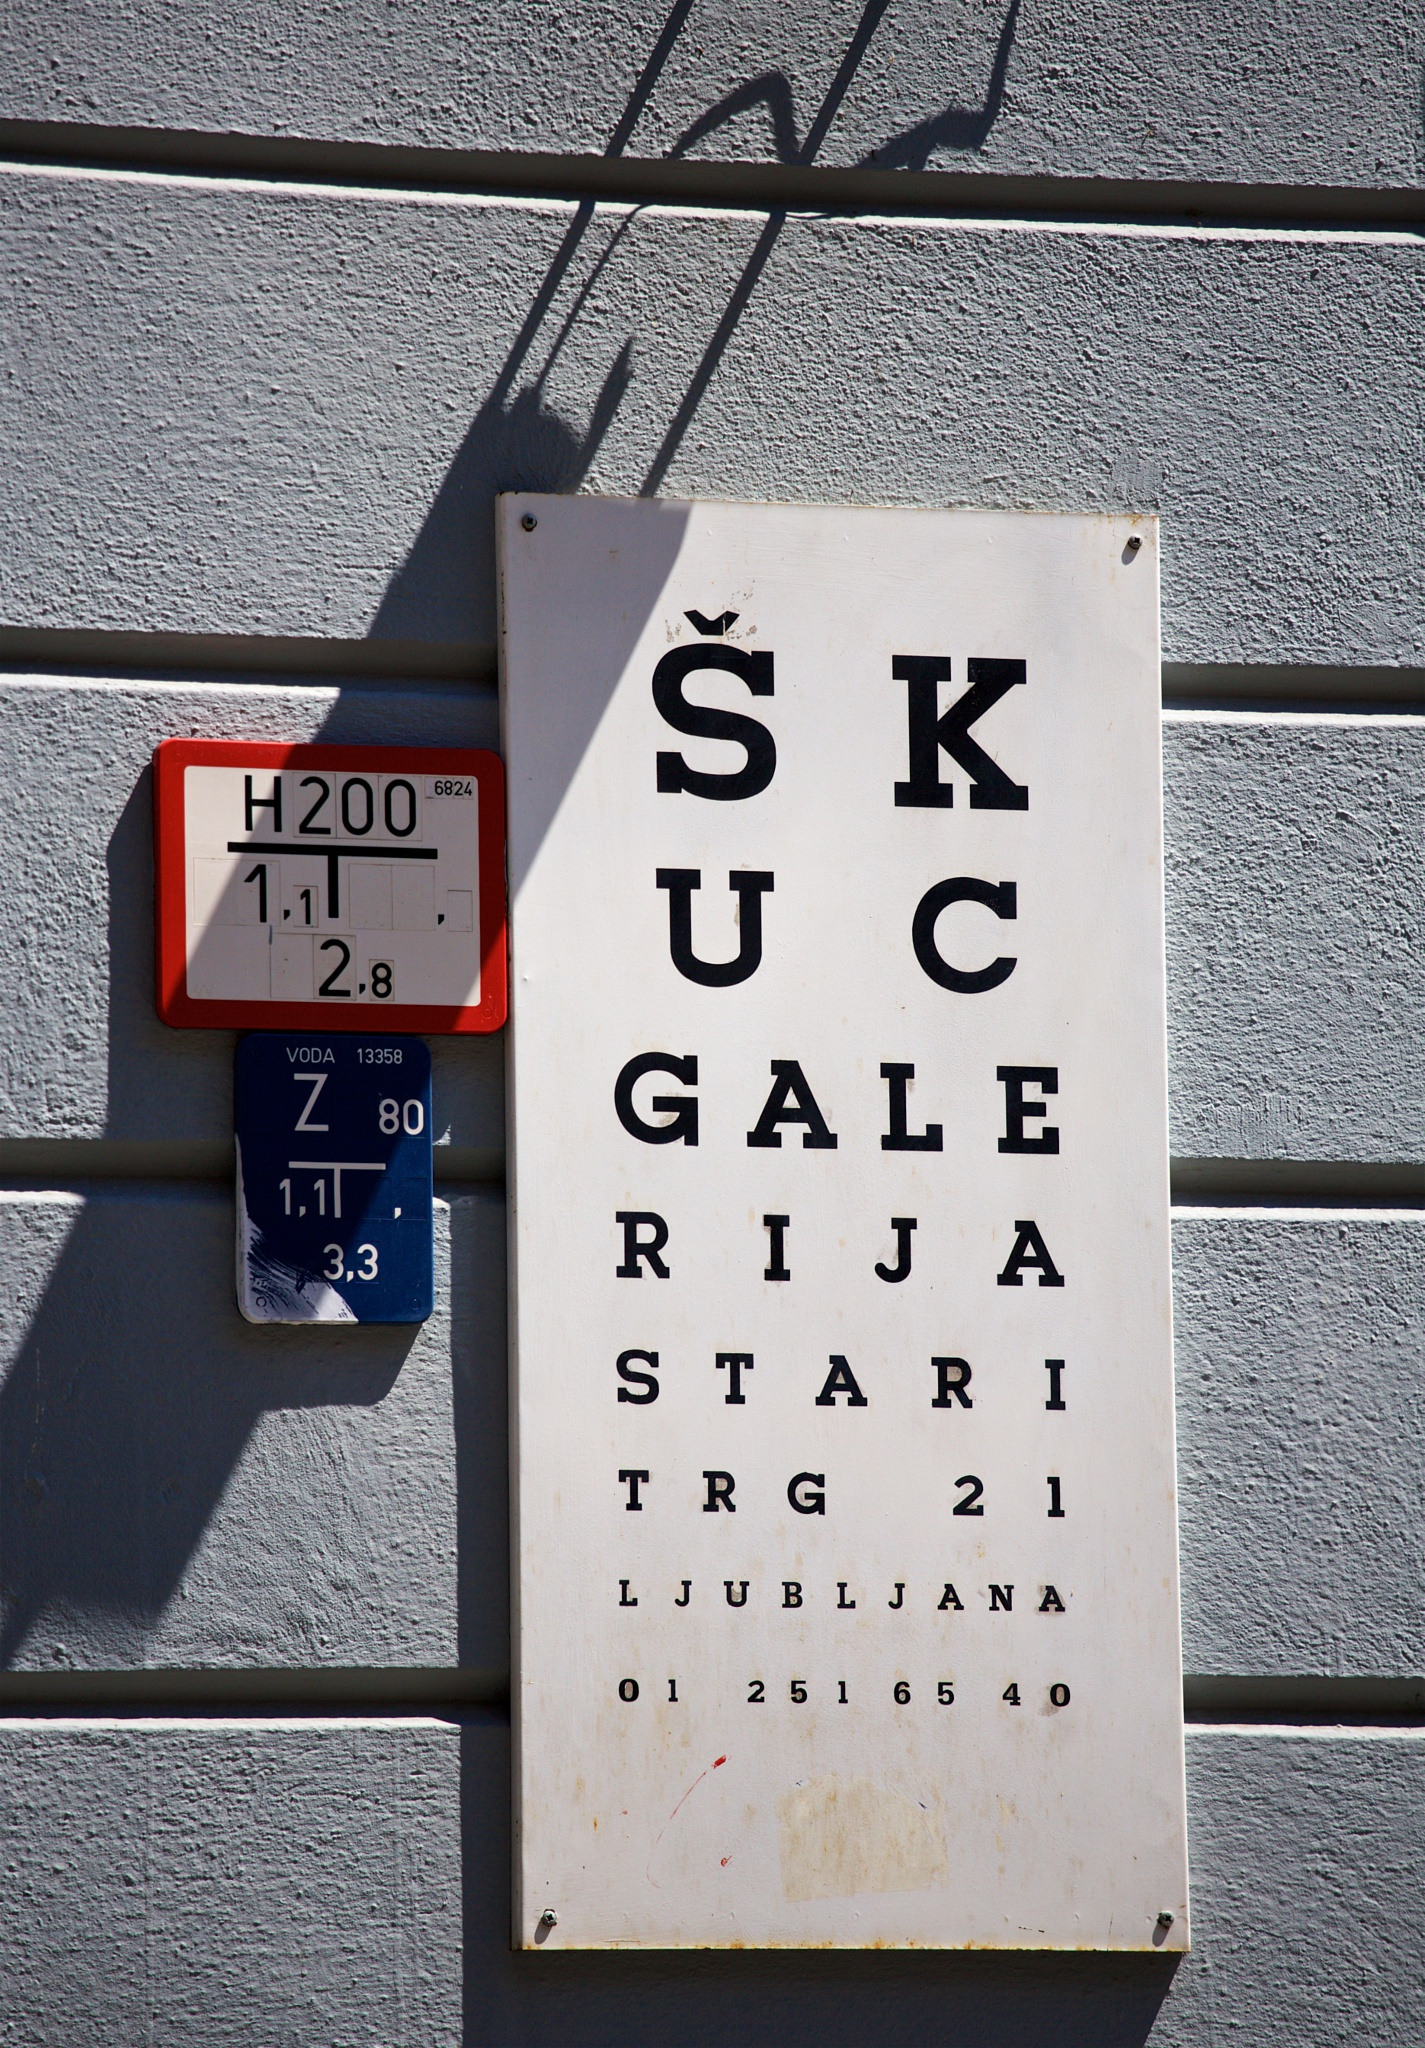 Eye Test by paolotomaselloct